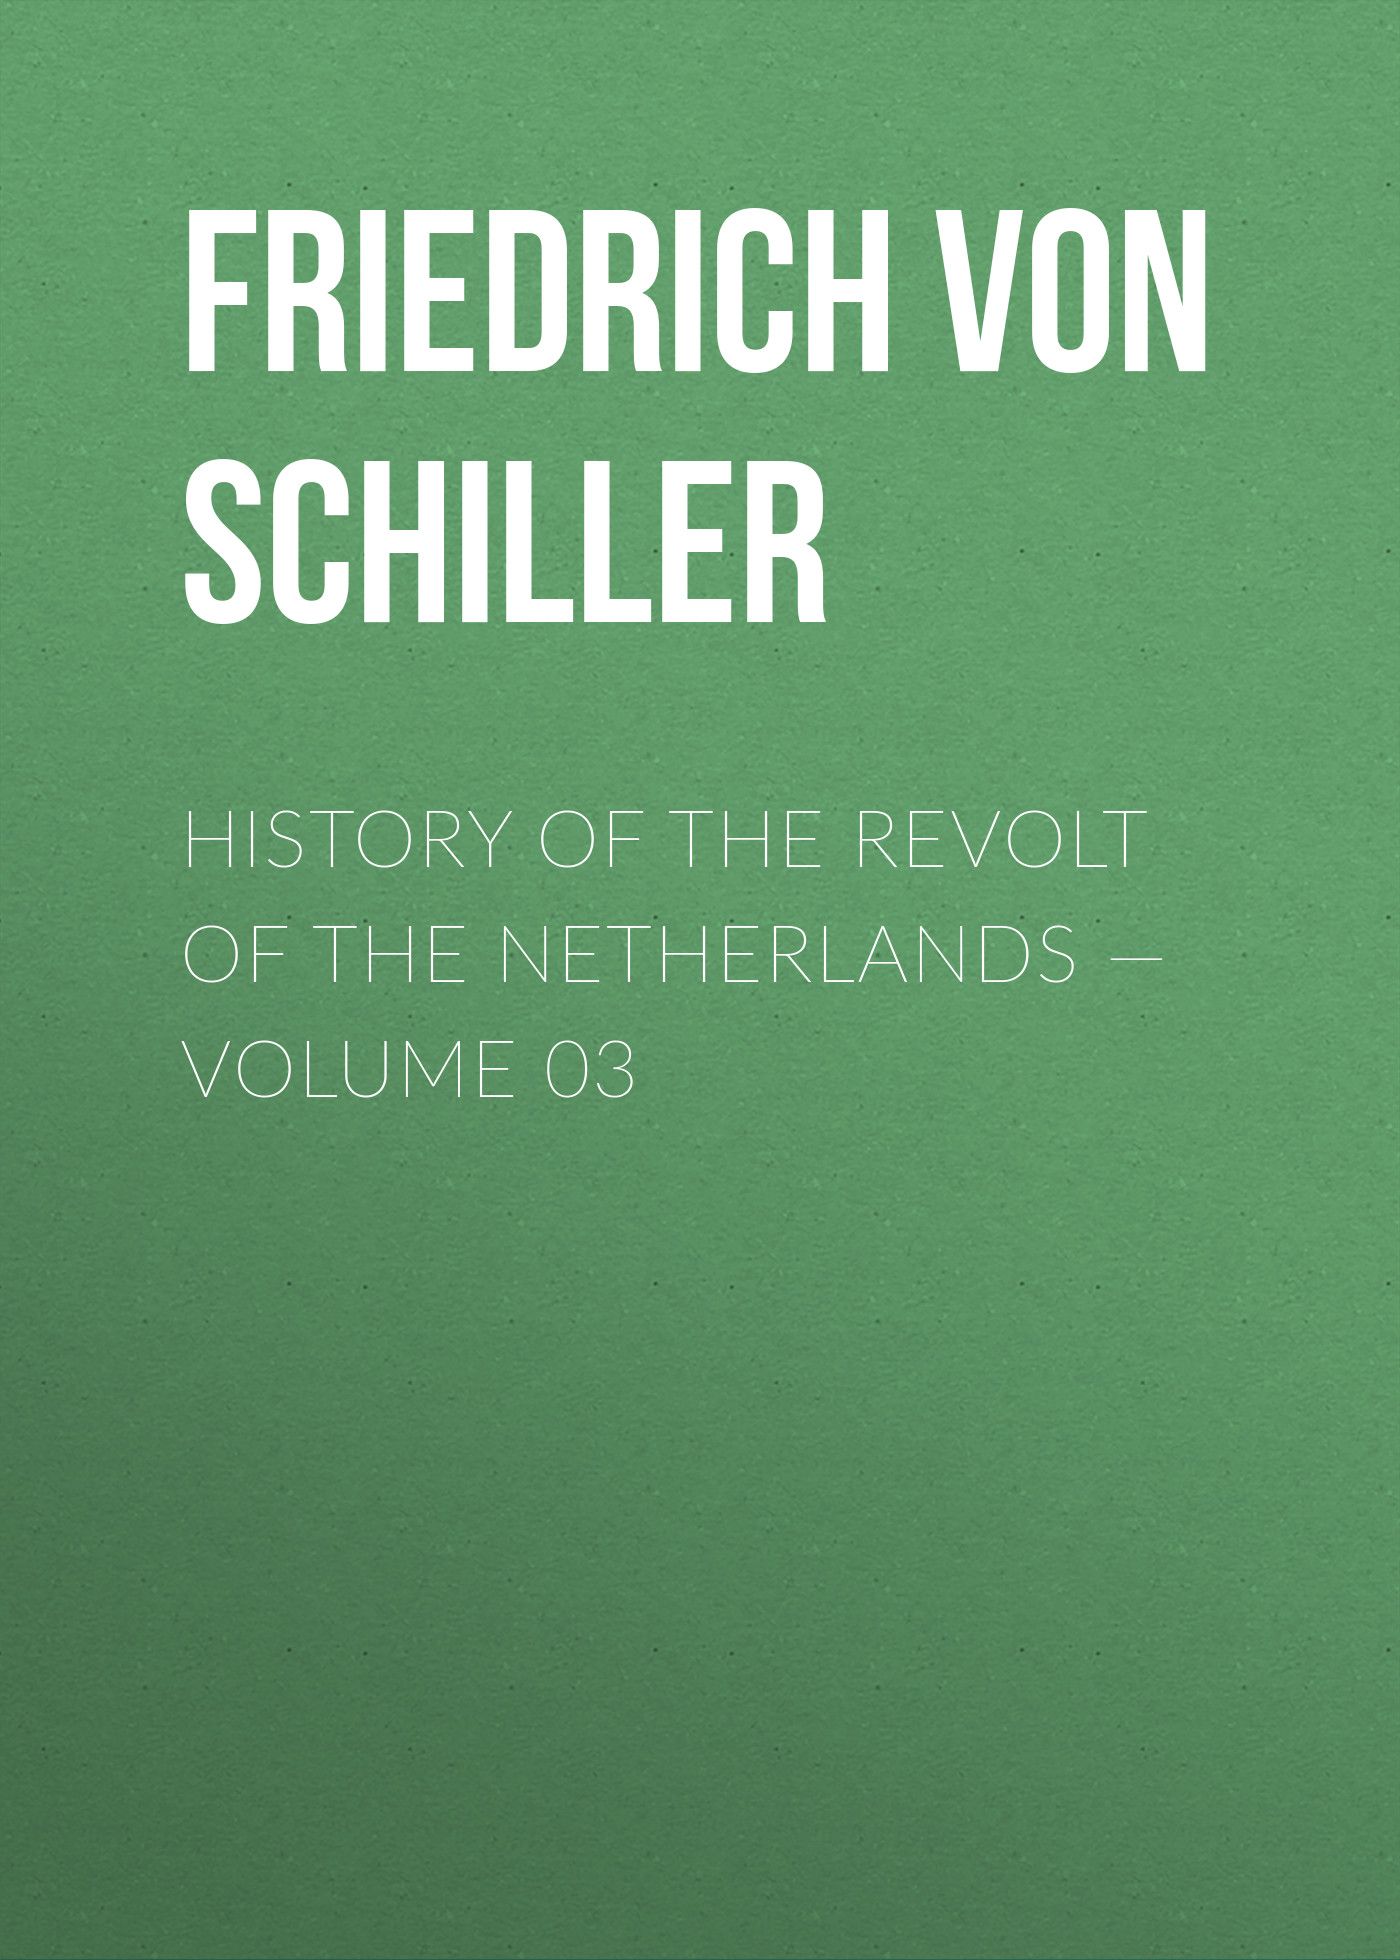 Friedrich von Schiller History of the Revolt of the Netherlands — Volume 03 autoleader 12v multi function 69800mah portable starting device car jump starter power bank car charger 4usb output us plug